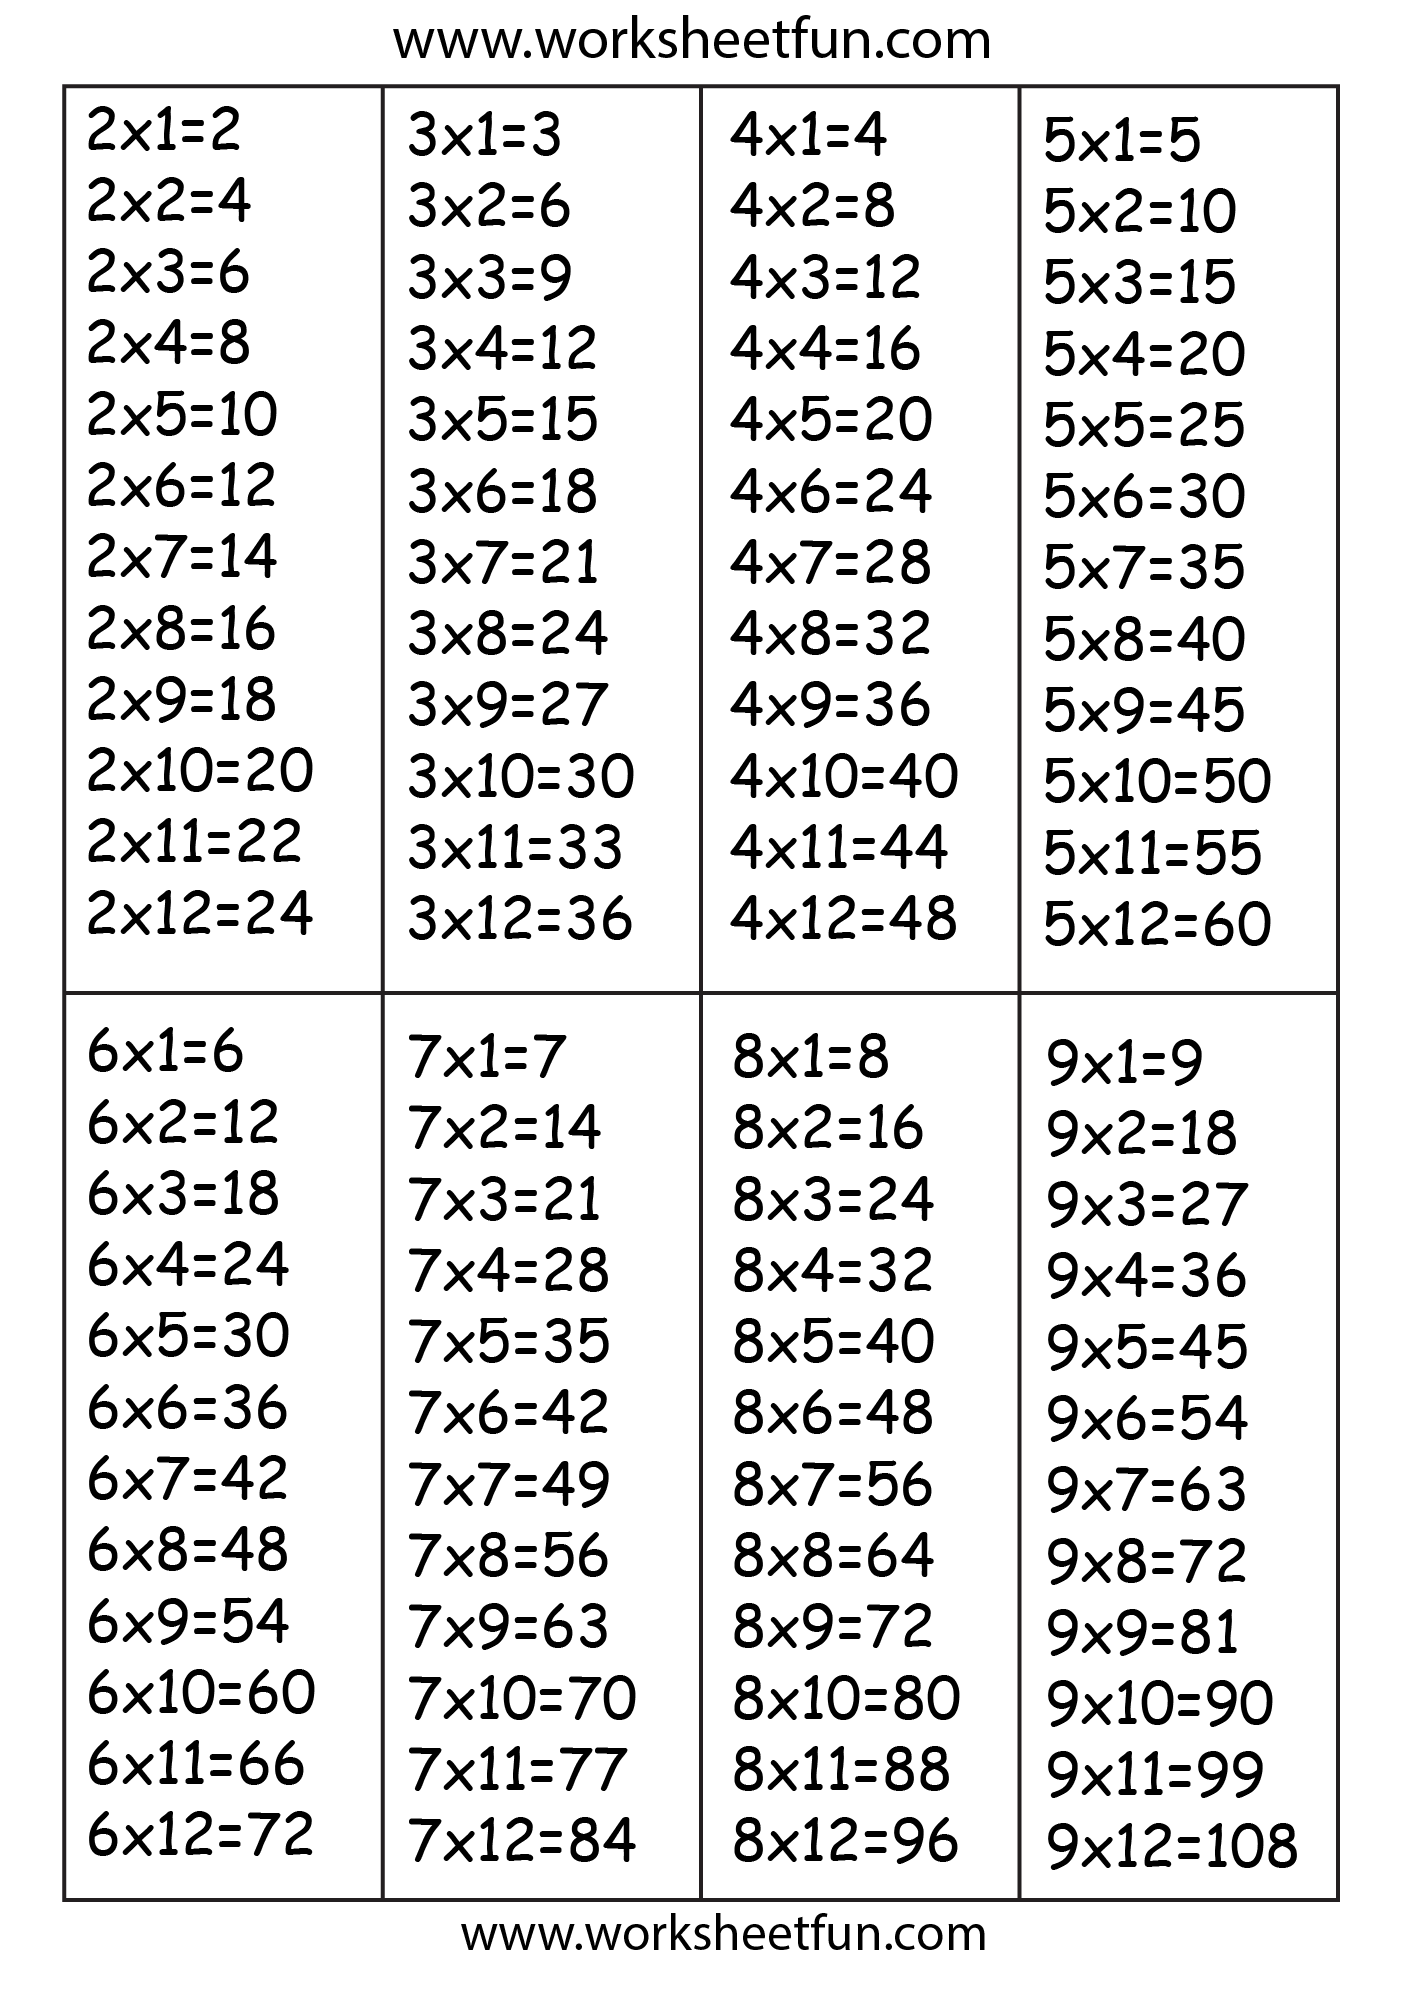 Times Table Chart 2 3 4 5 6 7 8 Amp 9